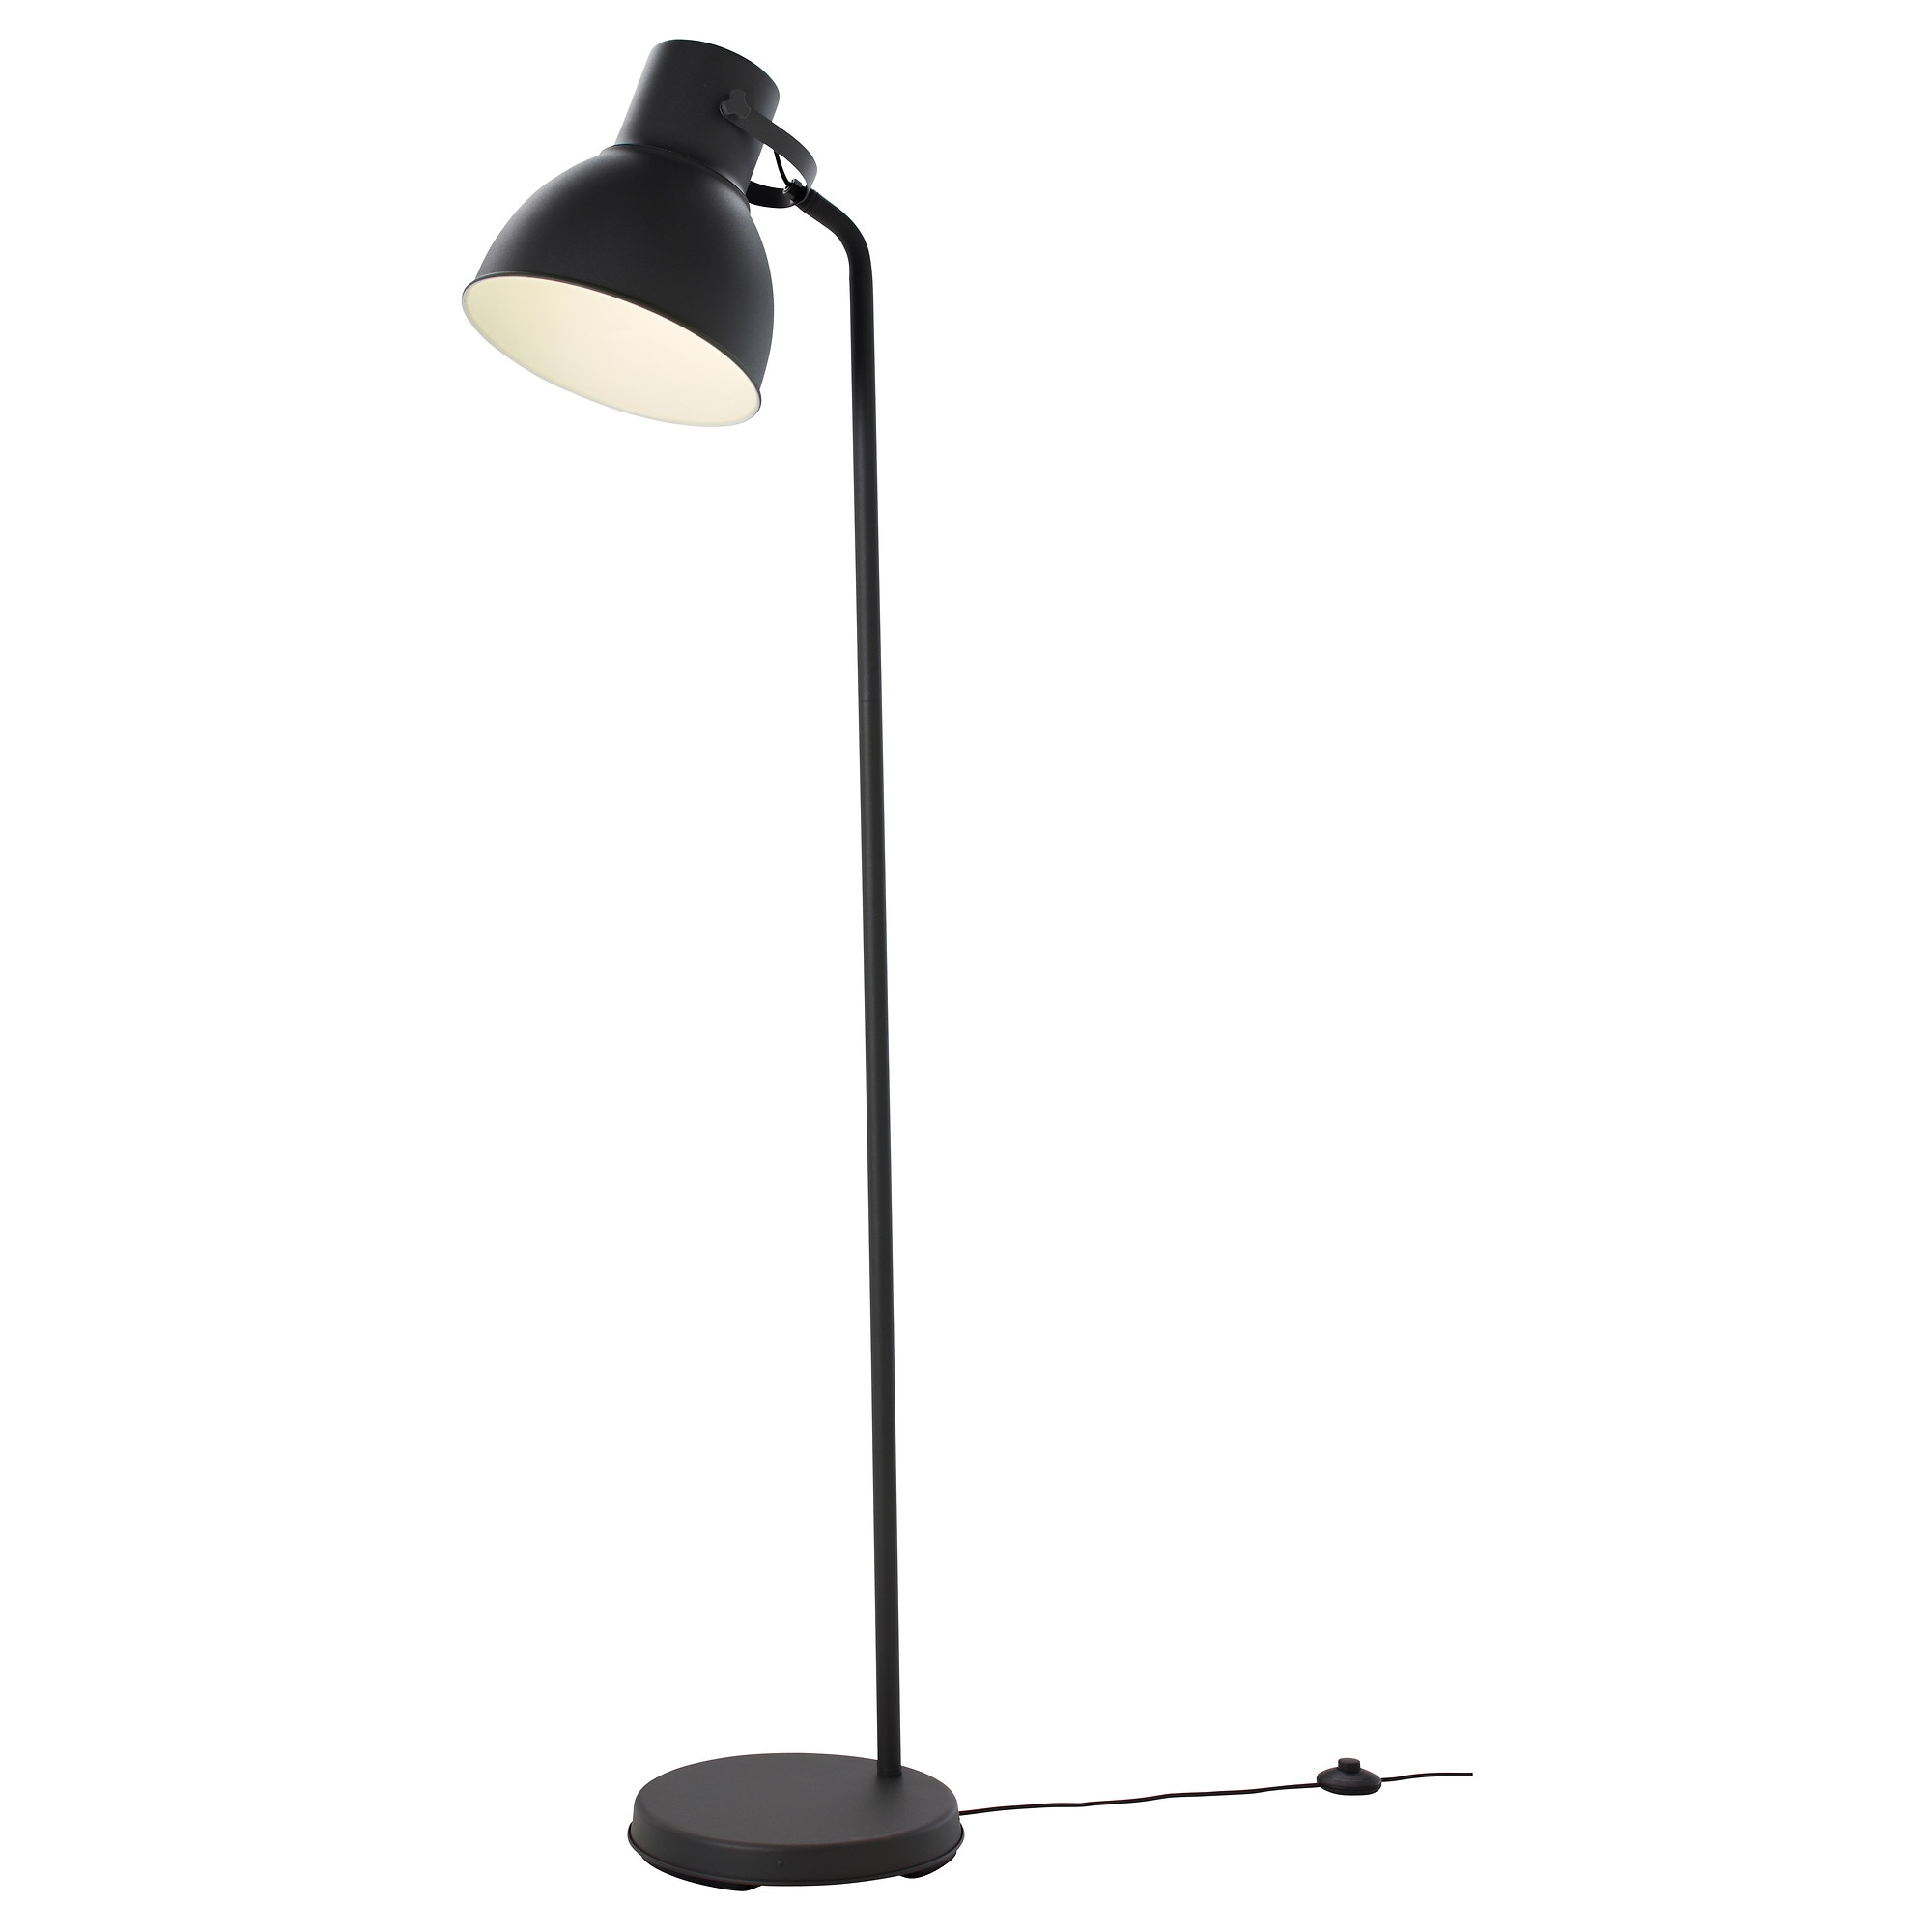 HEKTAR Floor lamp IKEA